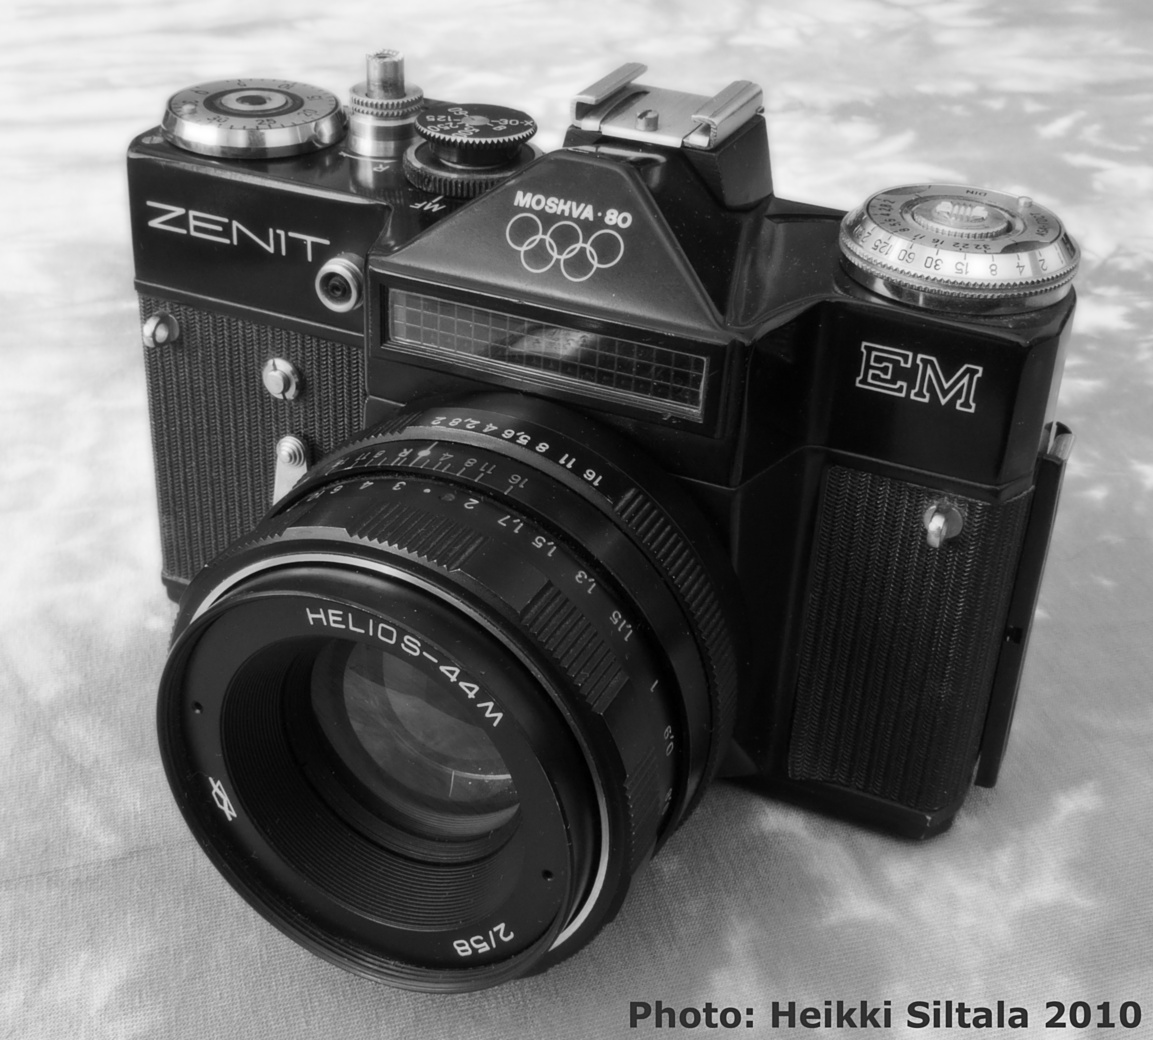 Bonus photo 8/9: my complete set of Zenit Olympics 1980 cameras, Zenit EM black with the olympic rings, photo 156179, 2010-07-31